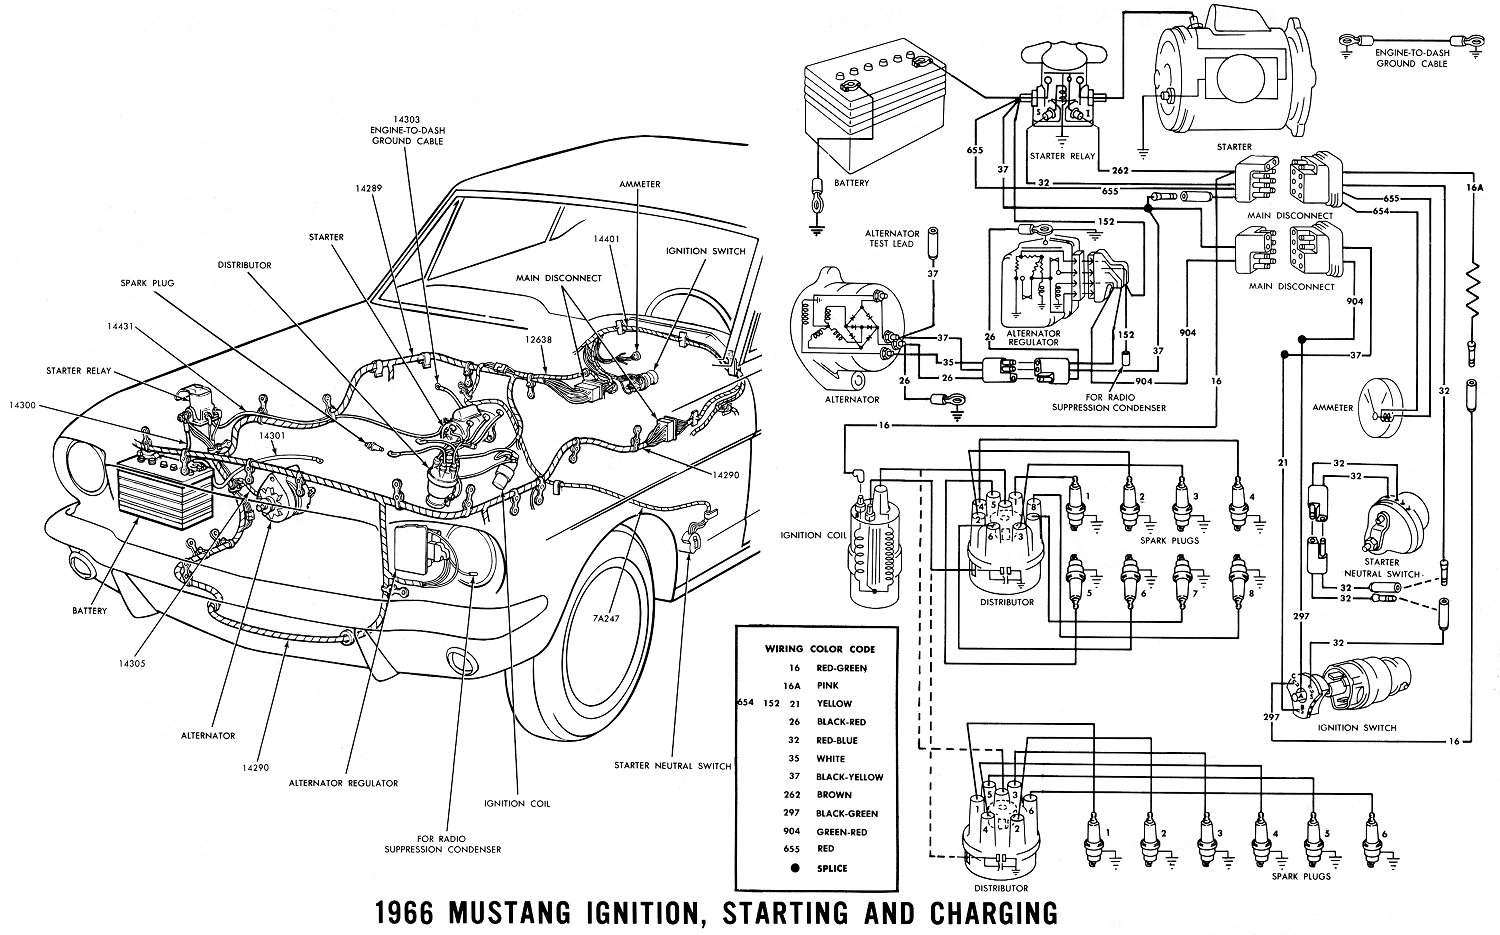 66ignit 1966 mustang wiring diagrams average joe restoration ford mustang wiring diagram at gsmx.co